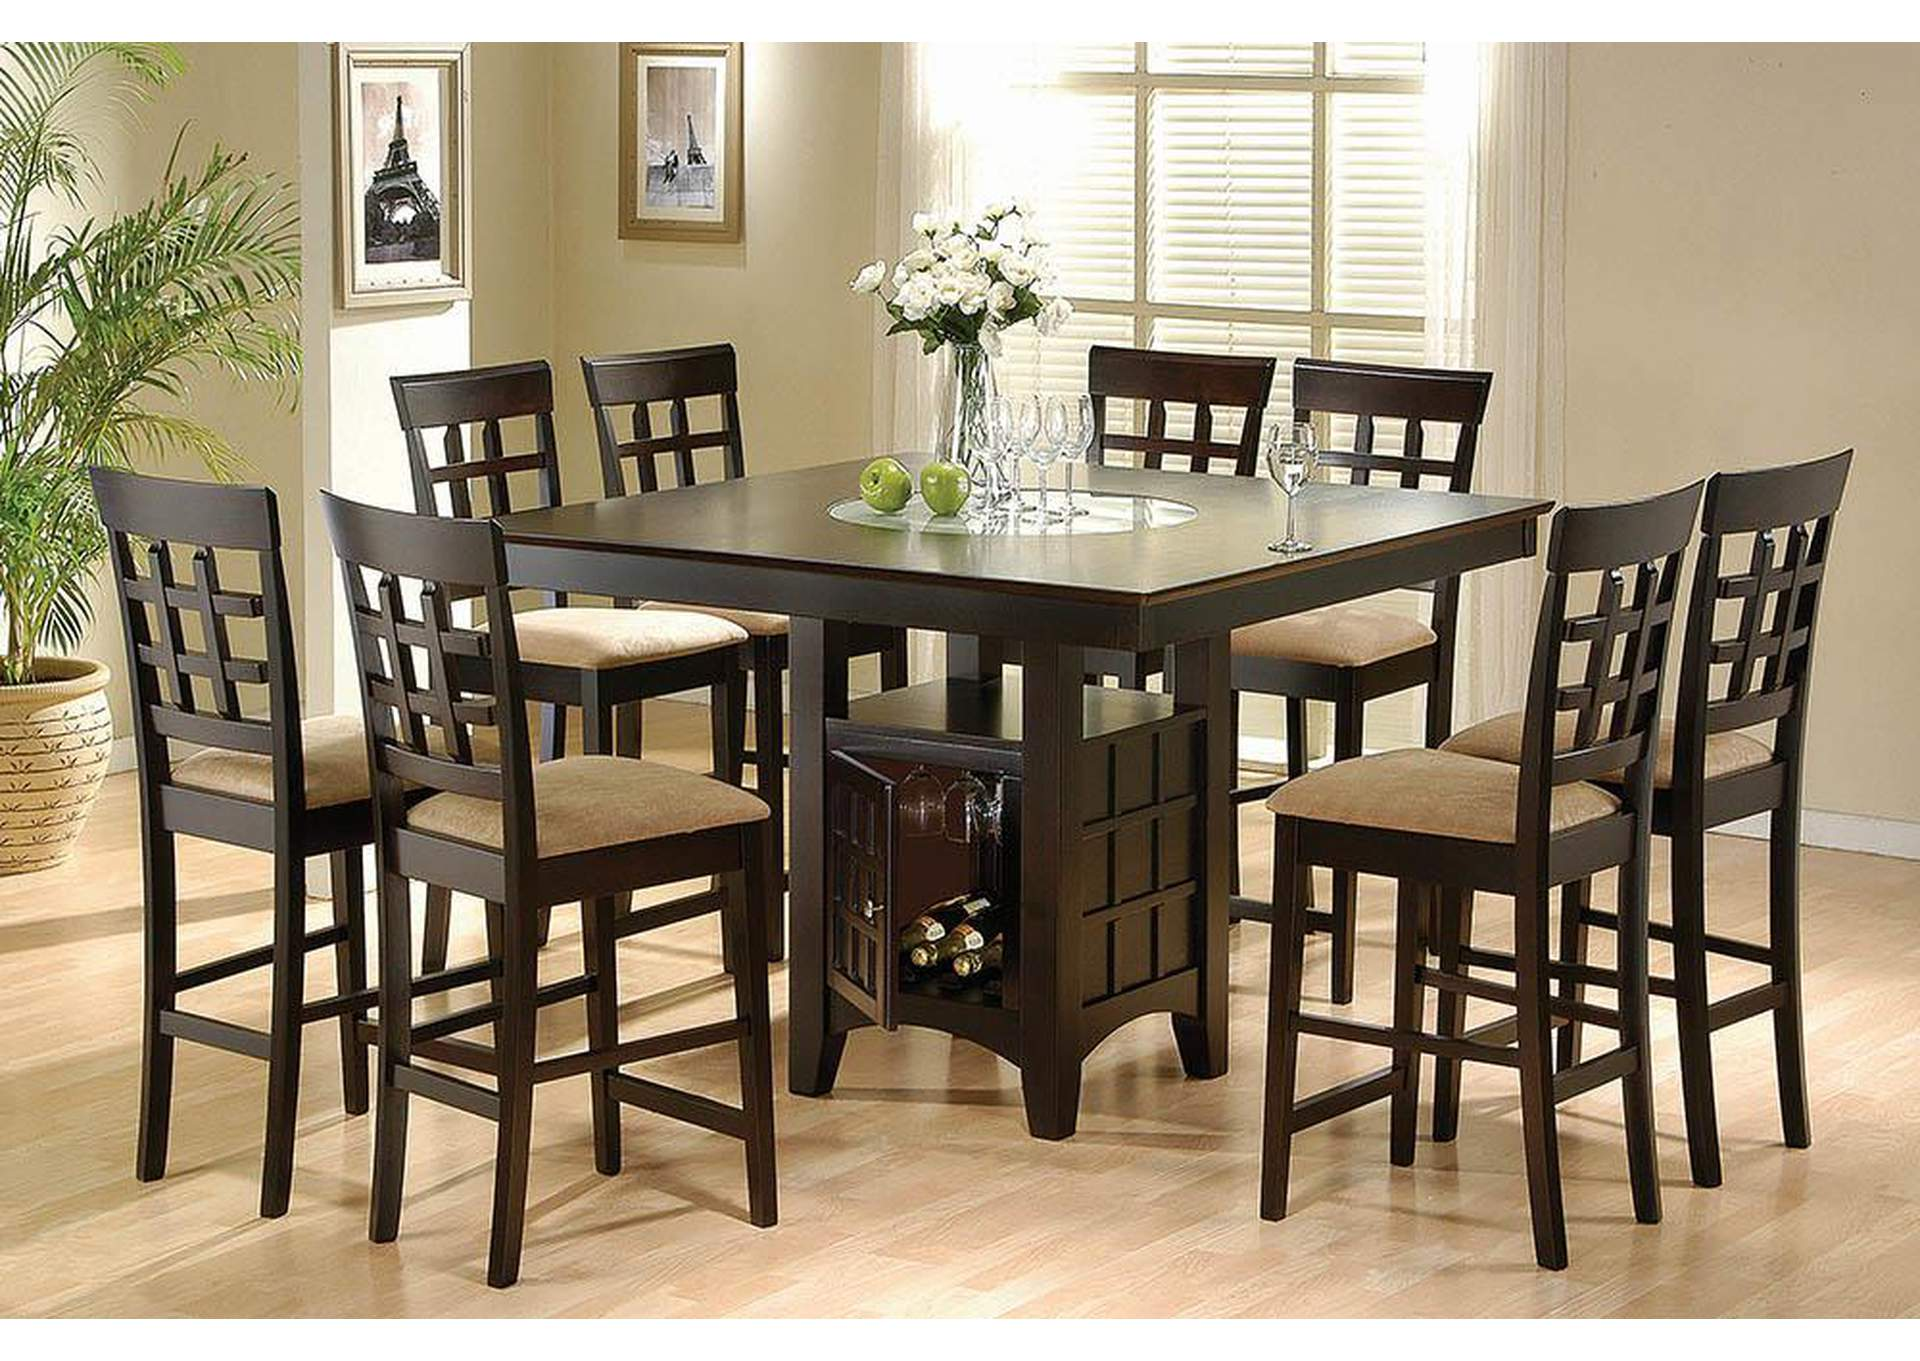 Dining Table,Coaster Furniture